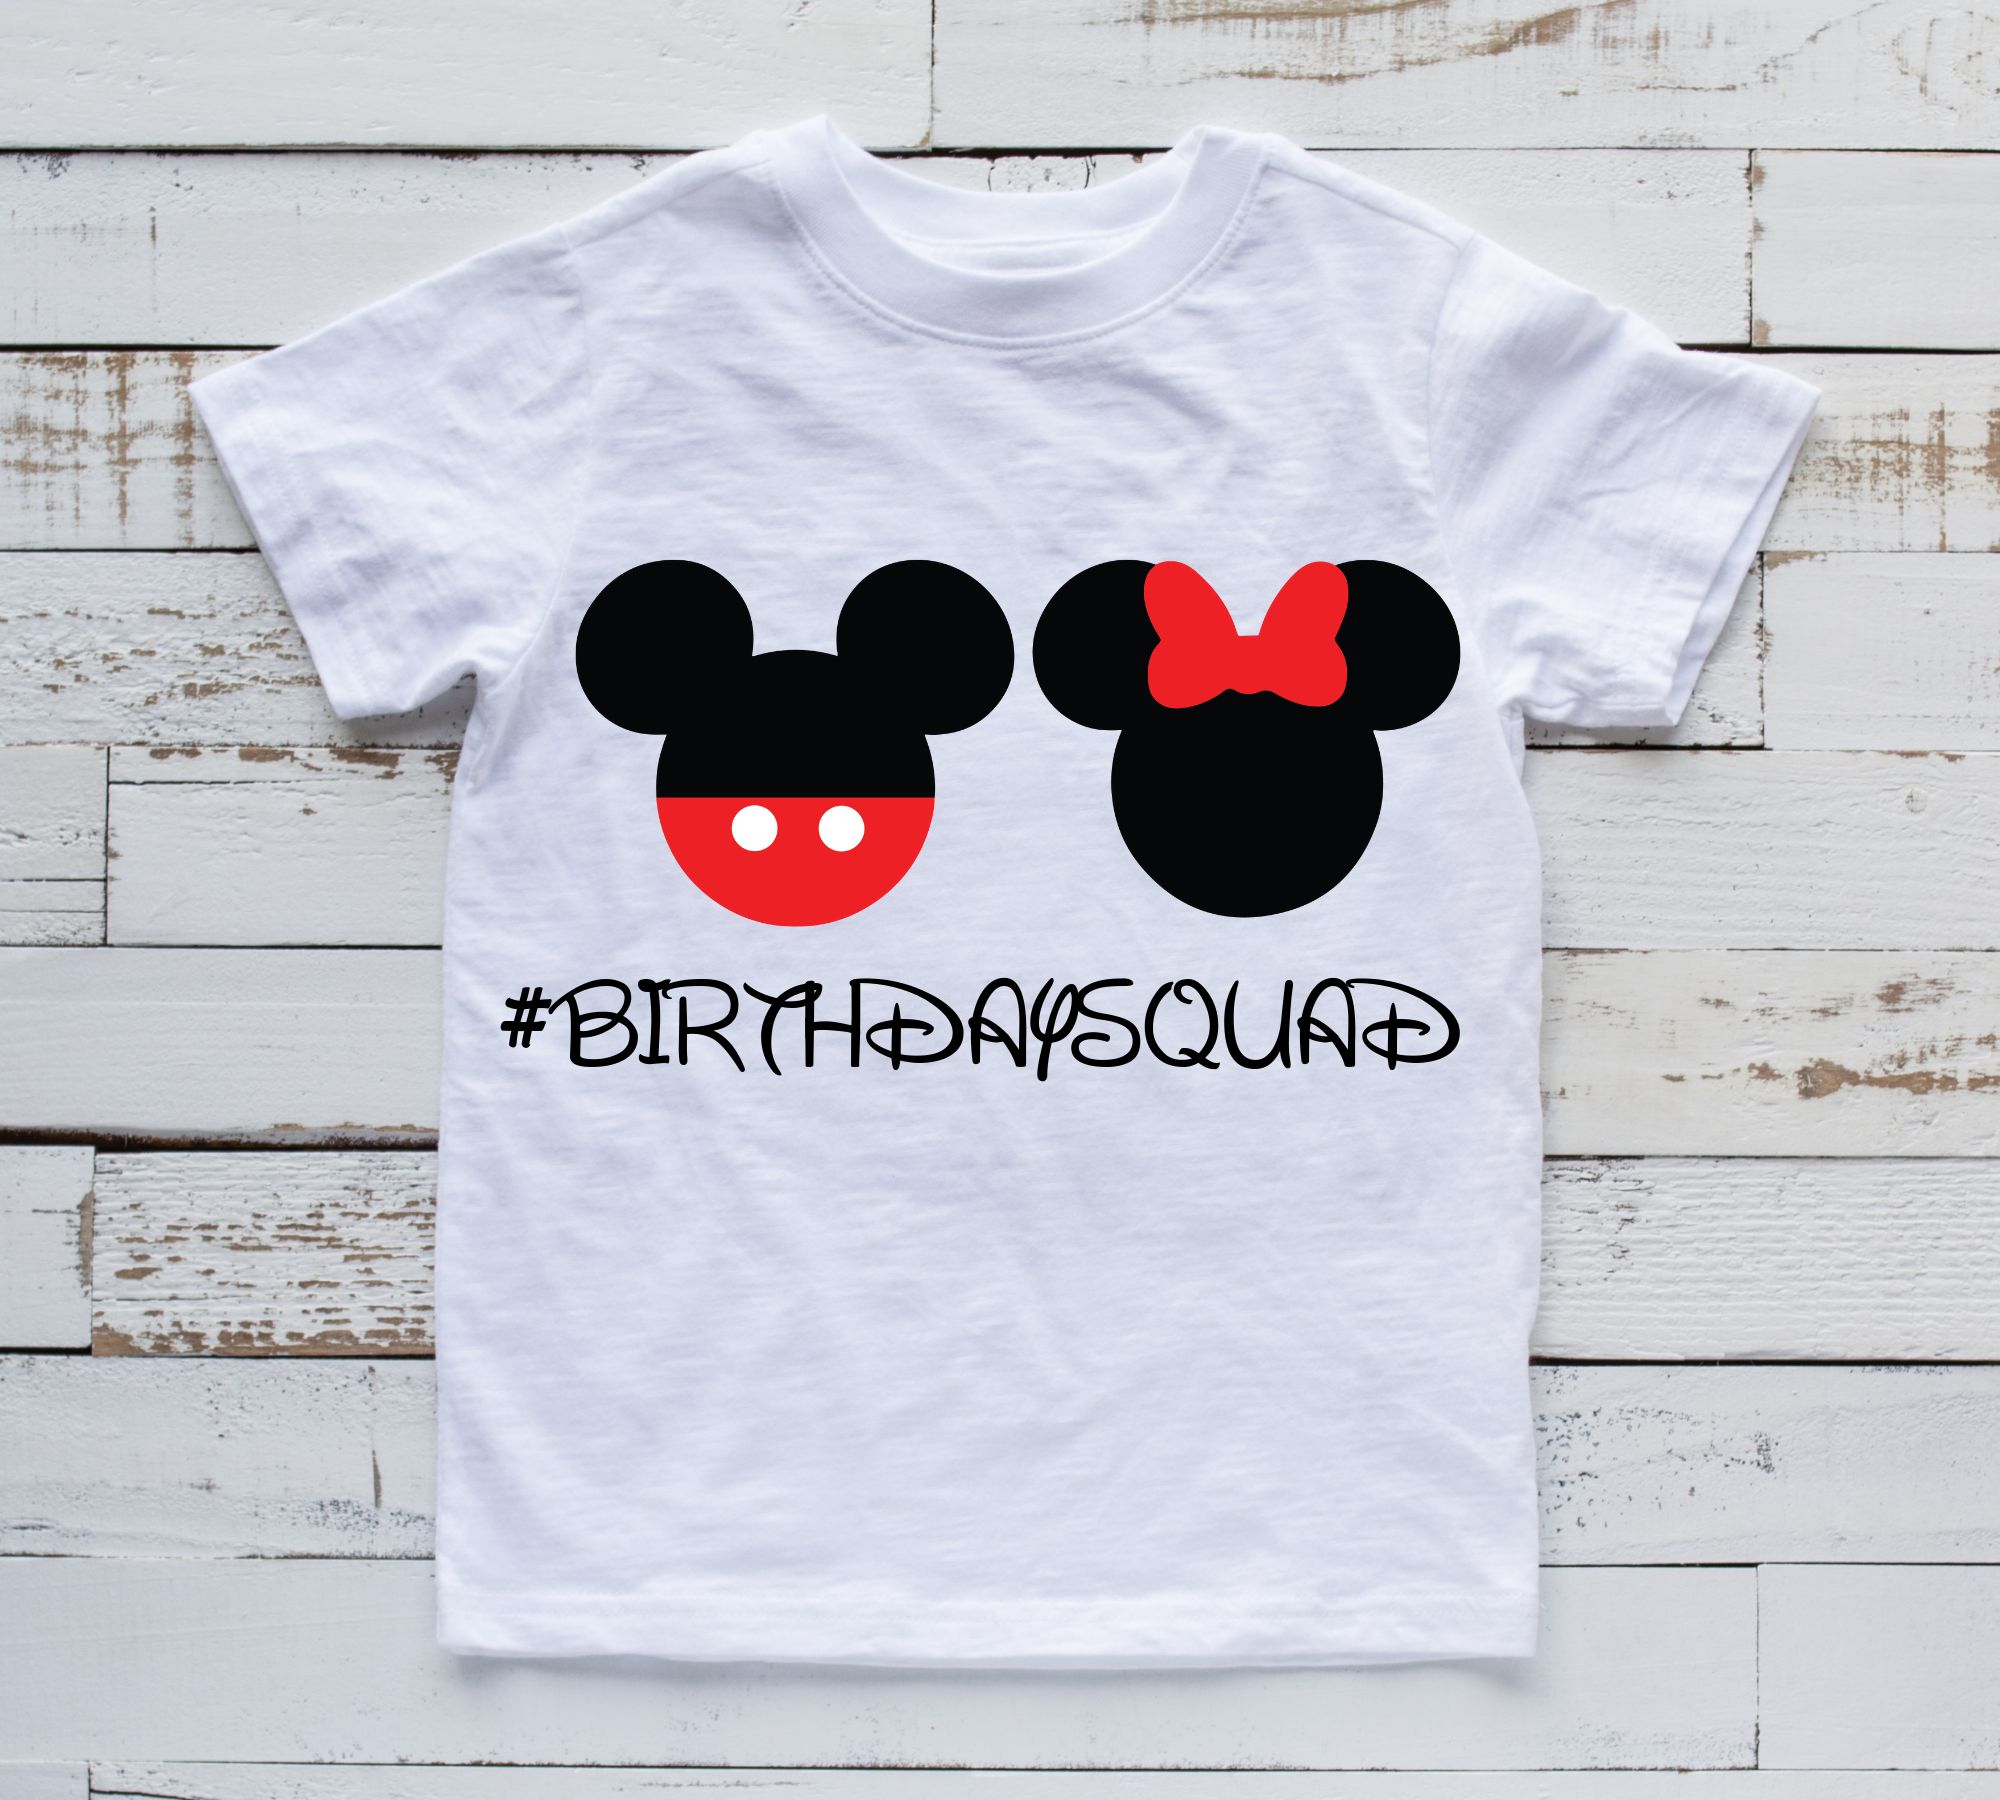 Throwing A Disney Themed Birthday Party Check Out This Birthdaysquad Tee Shirt With Mickey Mouse And Minnie Birthdayoutfit Mickeymouse